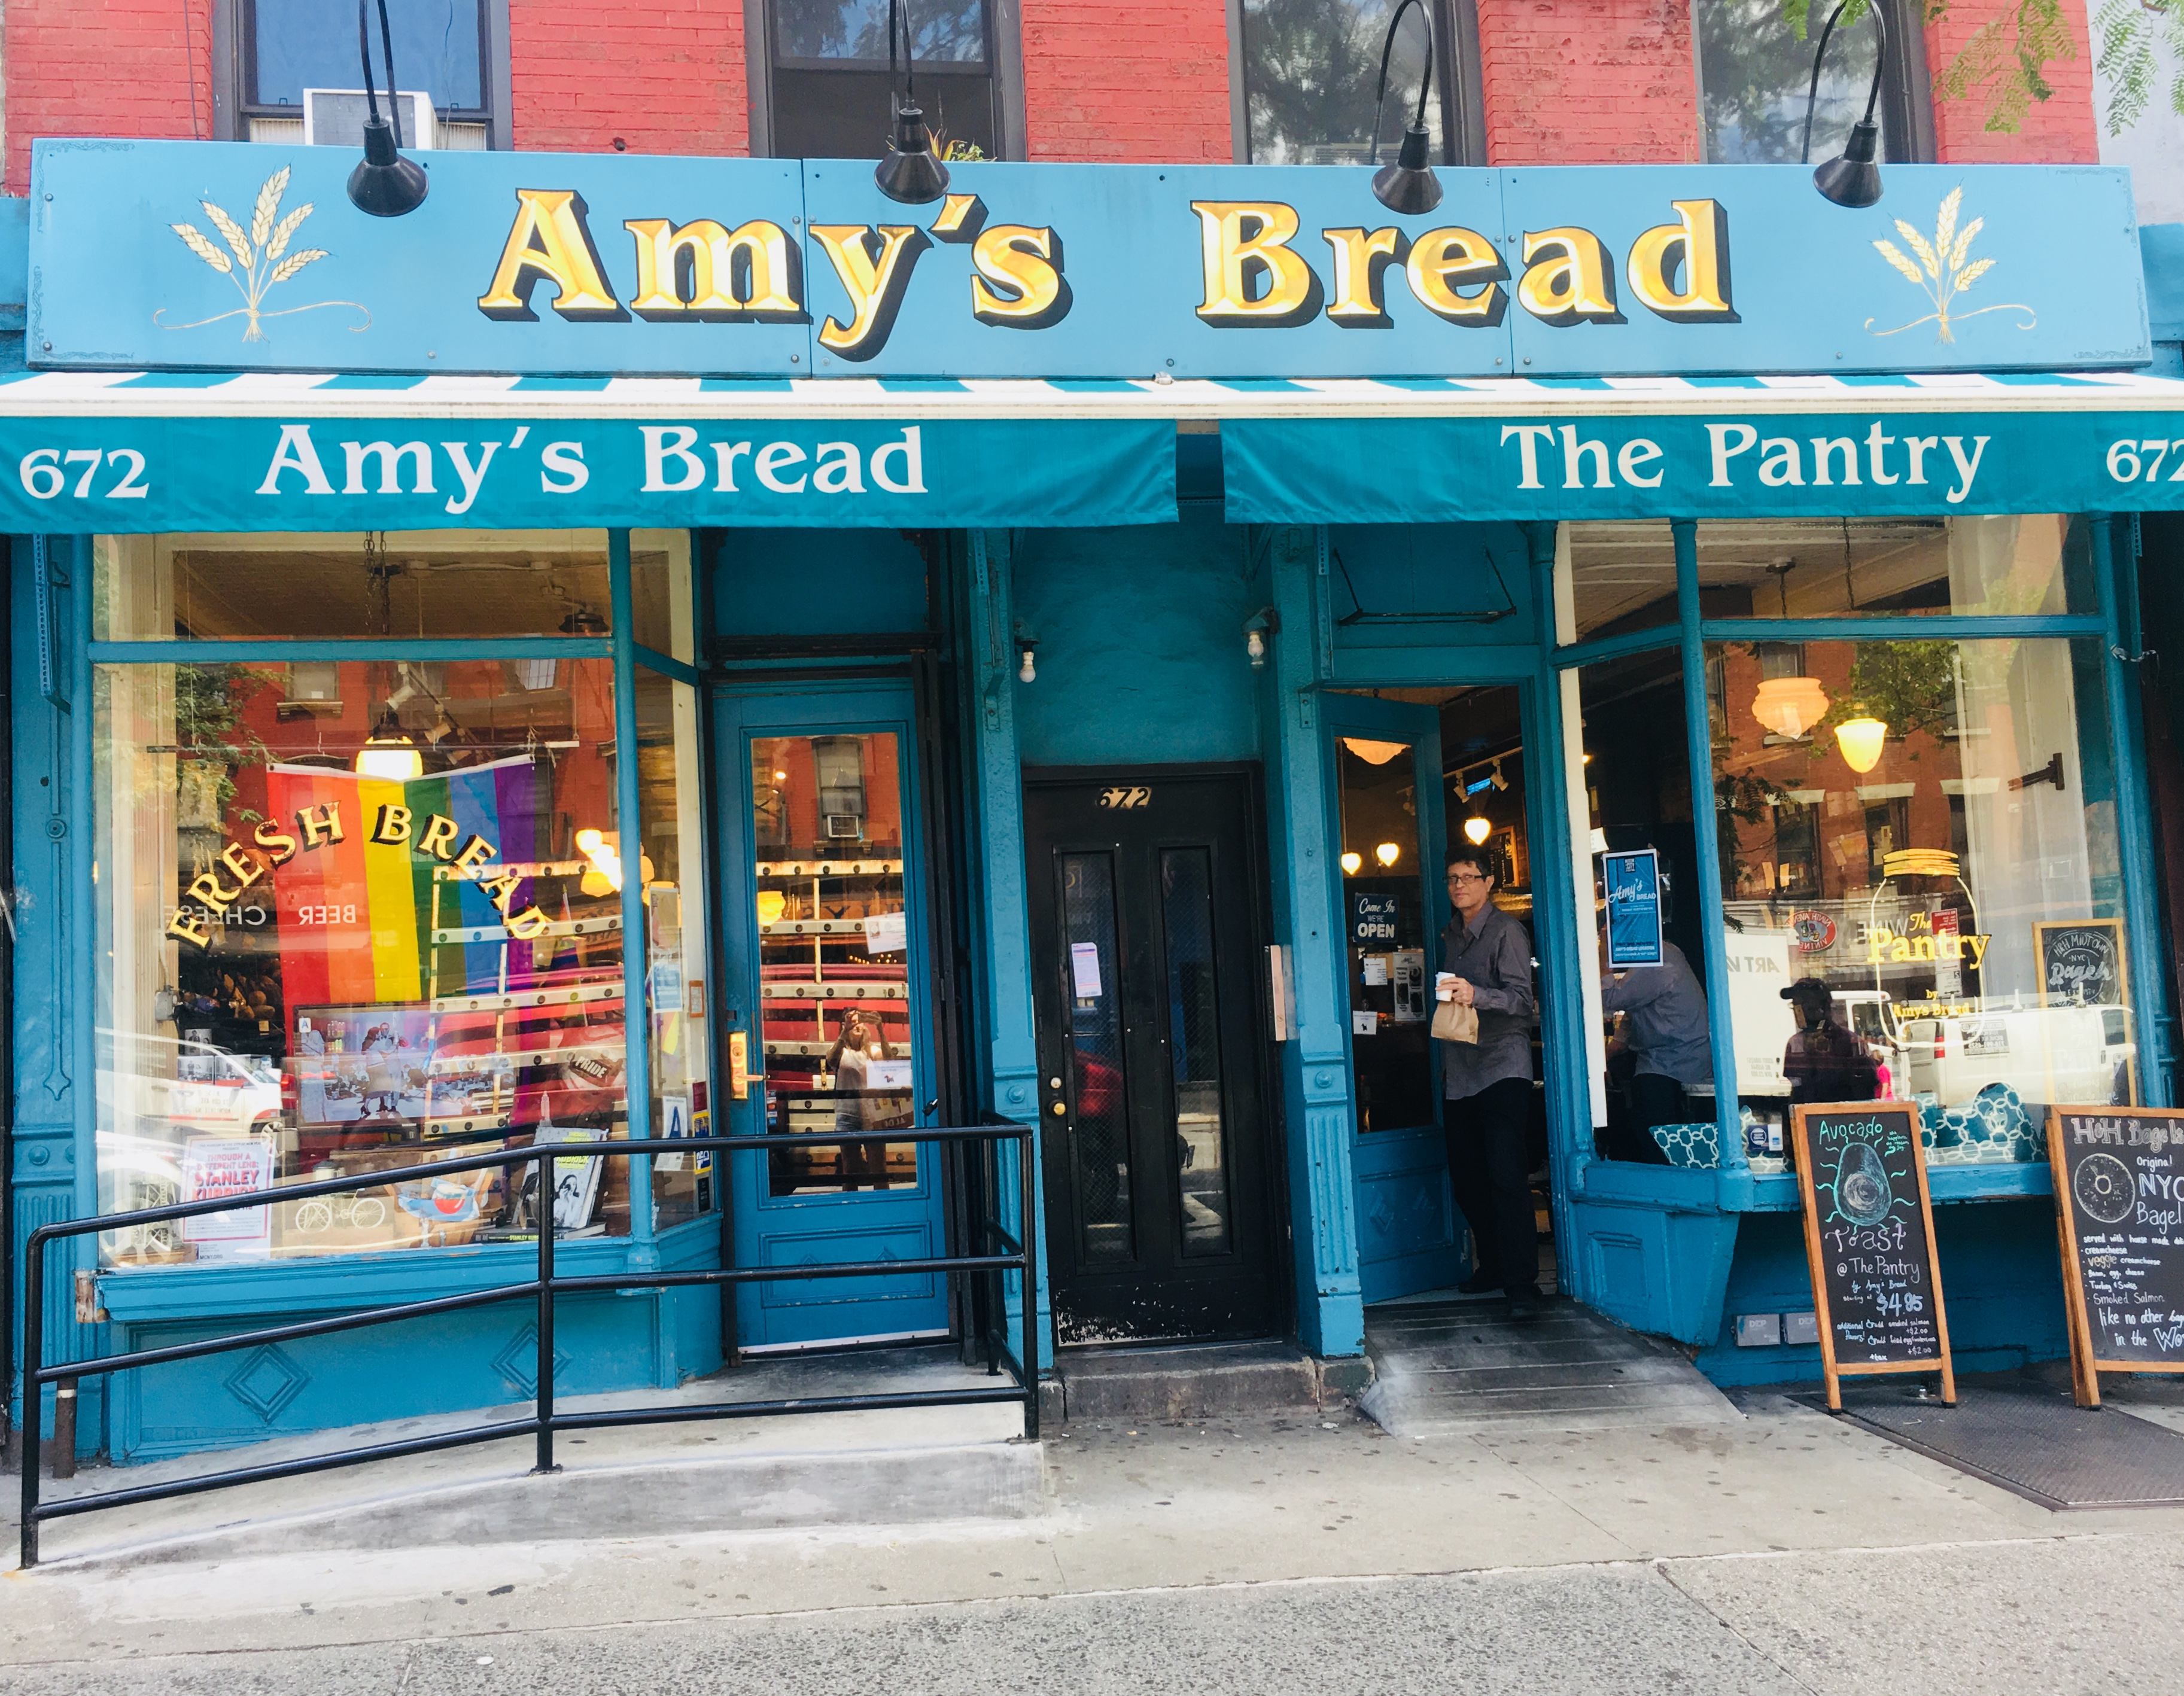 20-Something bij Amy's Bread in New York